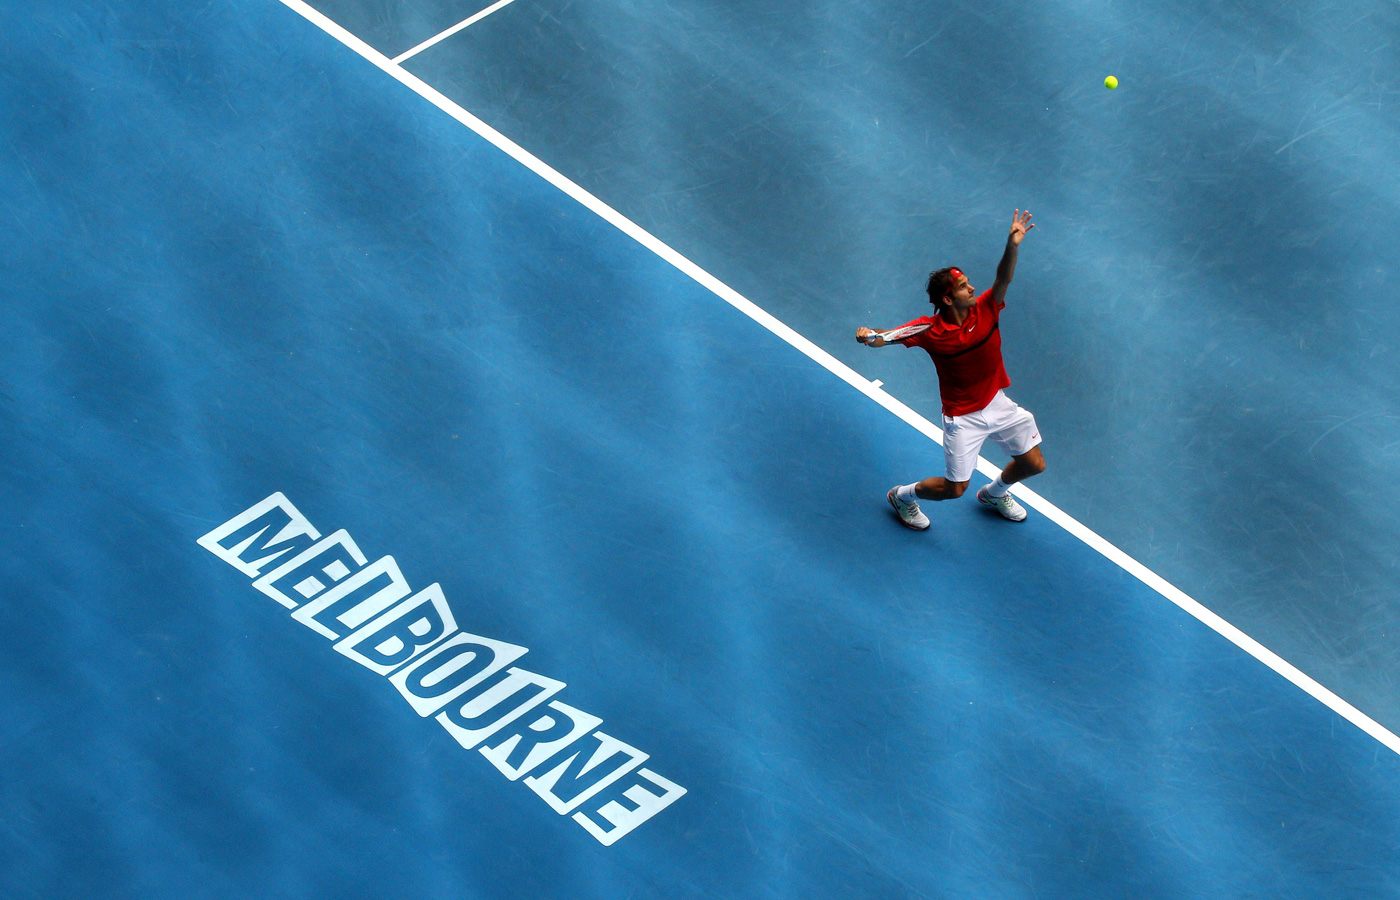 Tennis Fans Club: Roger Federer Hd Wallpapers